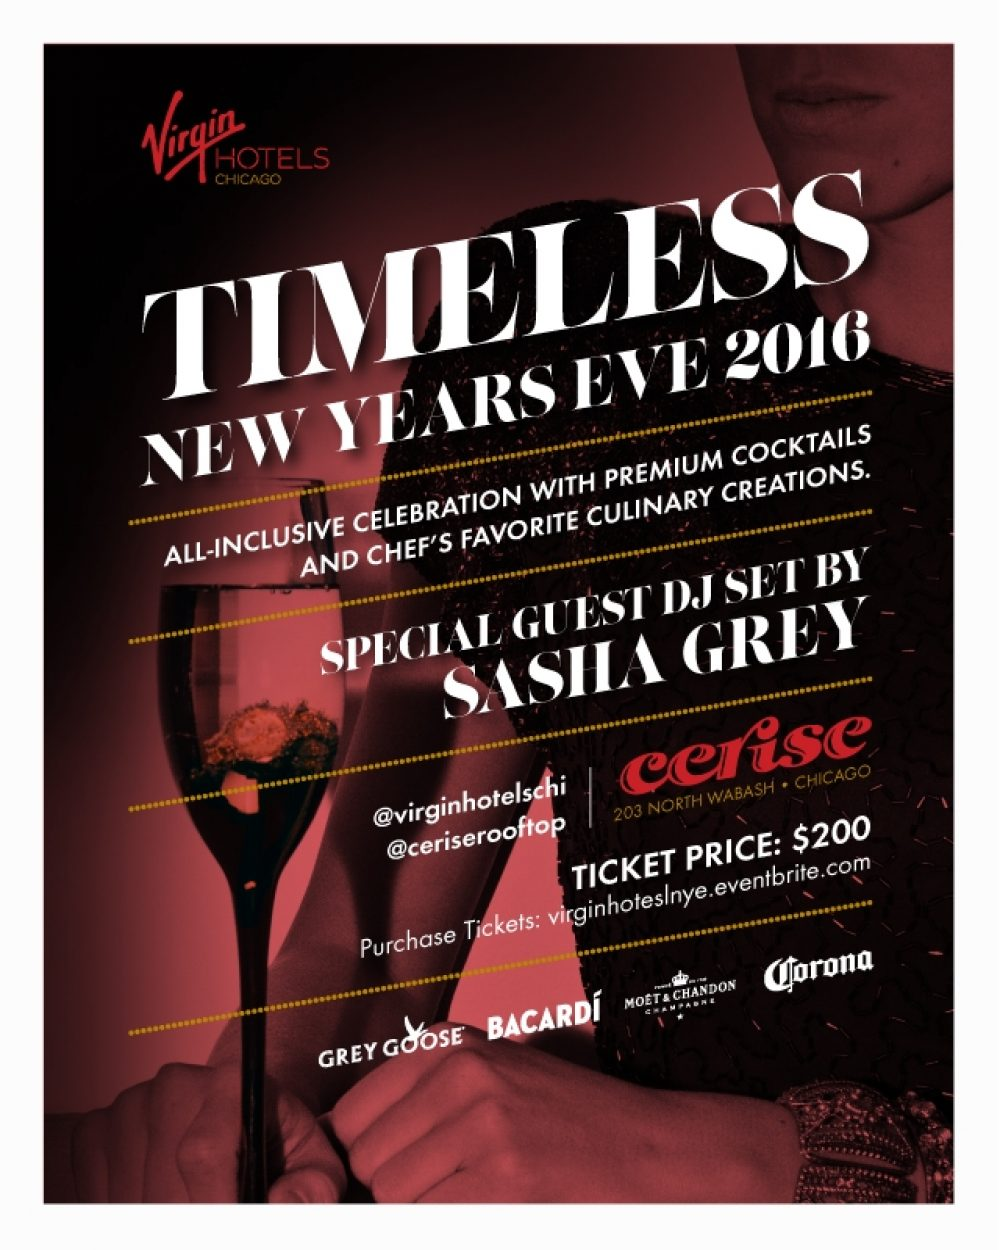 A Timeless New Year's Eve